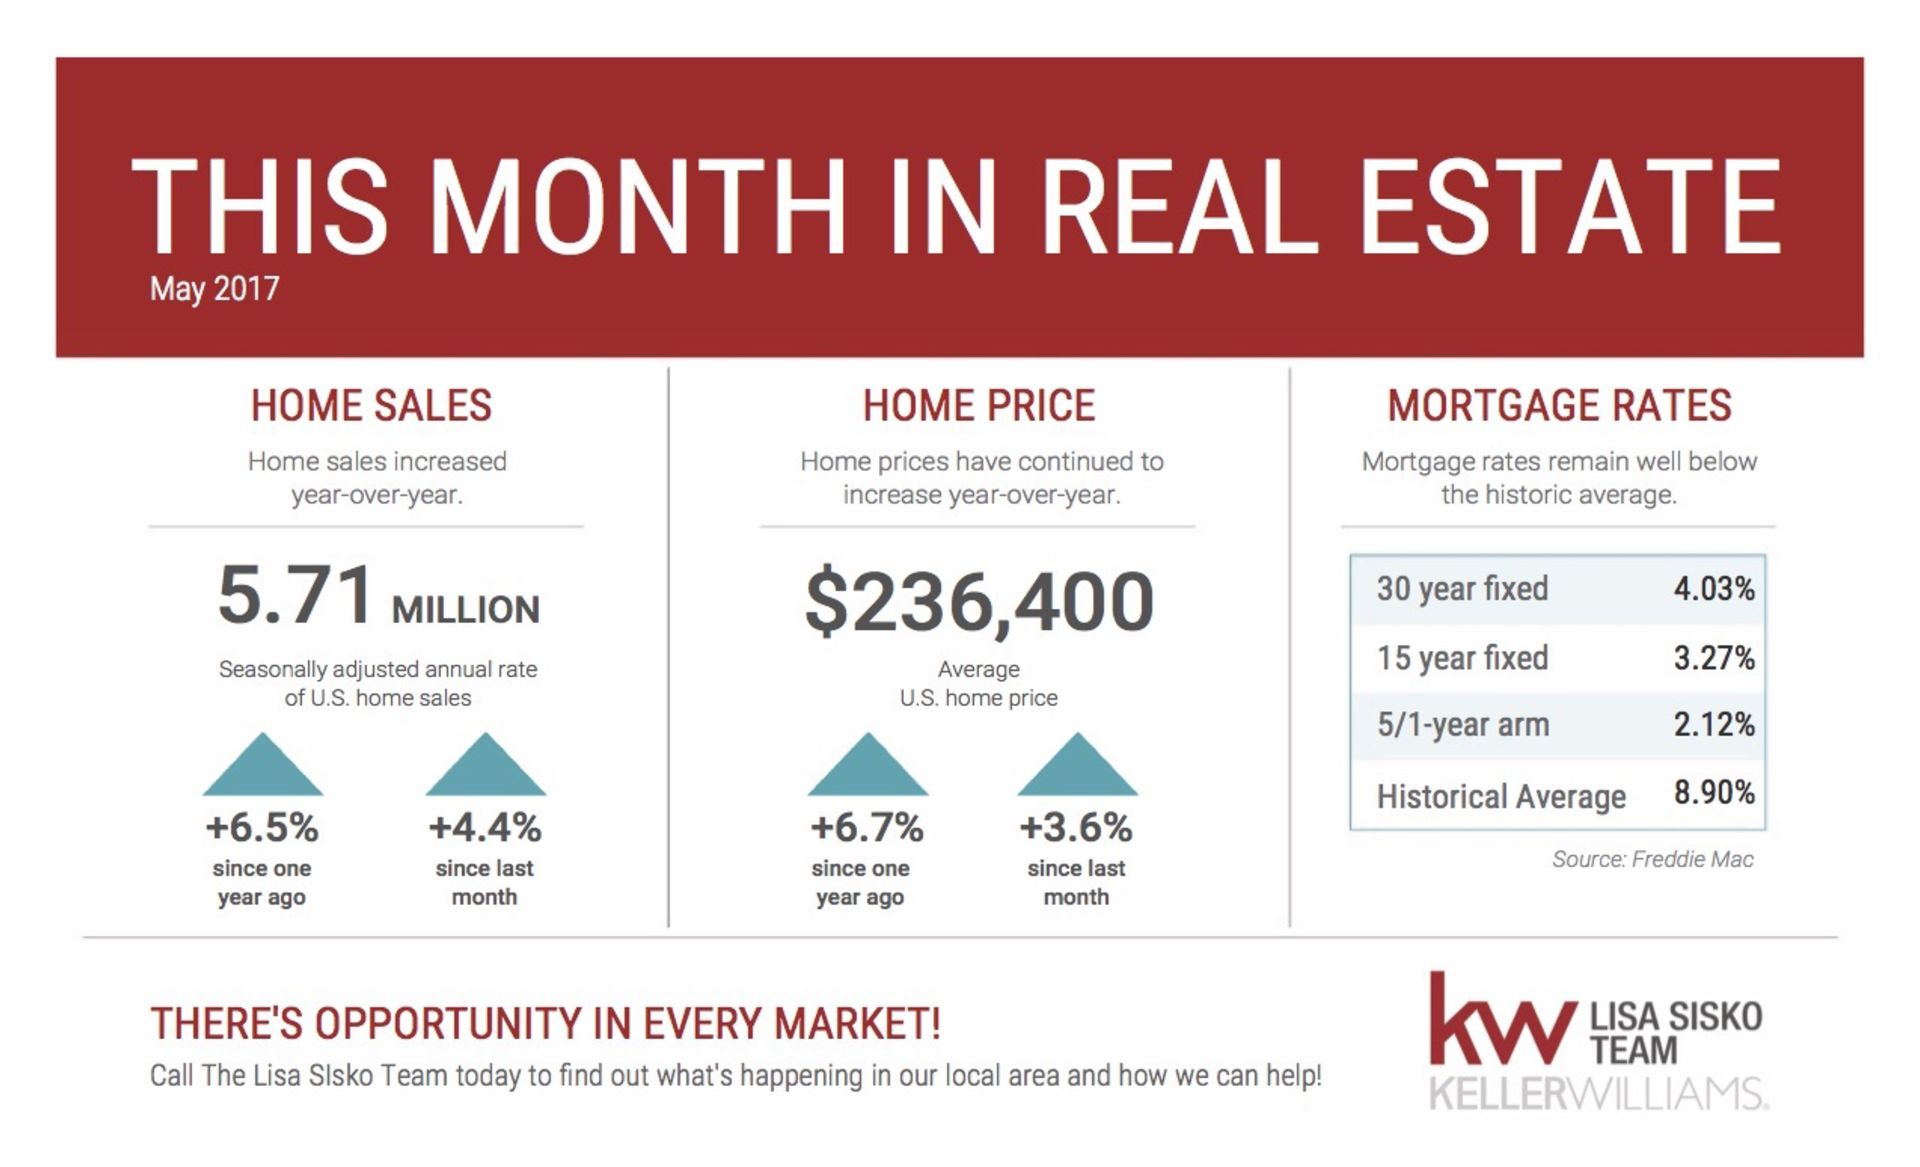 This Month in Real Estate – National Statistics for May 2017